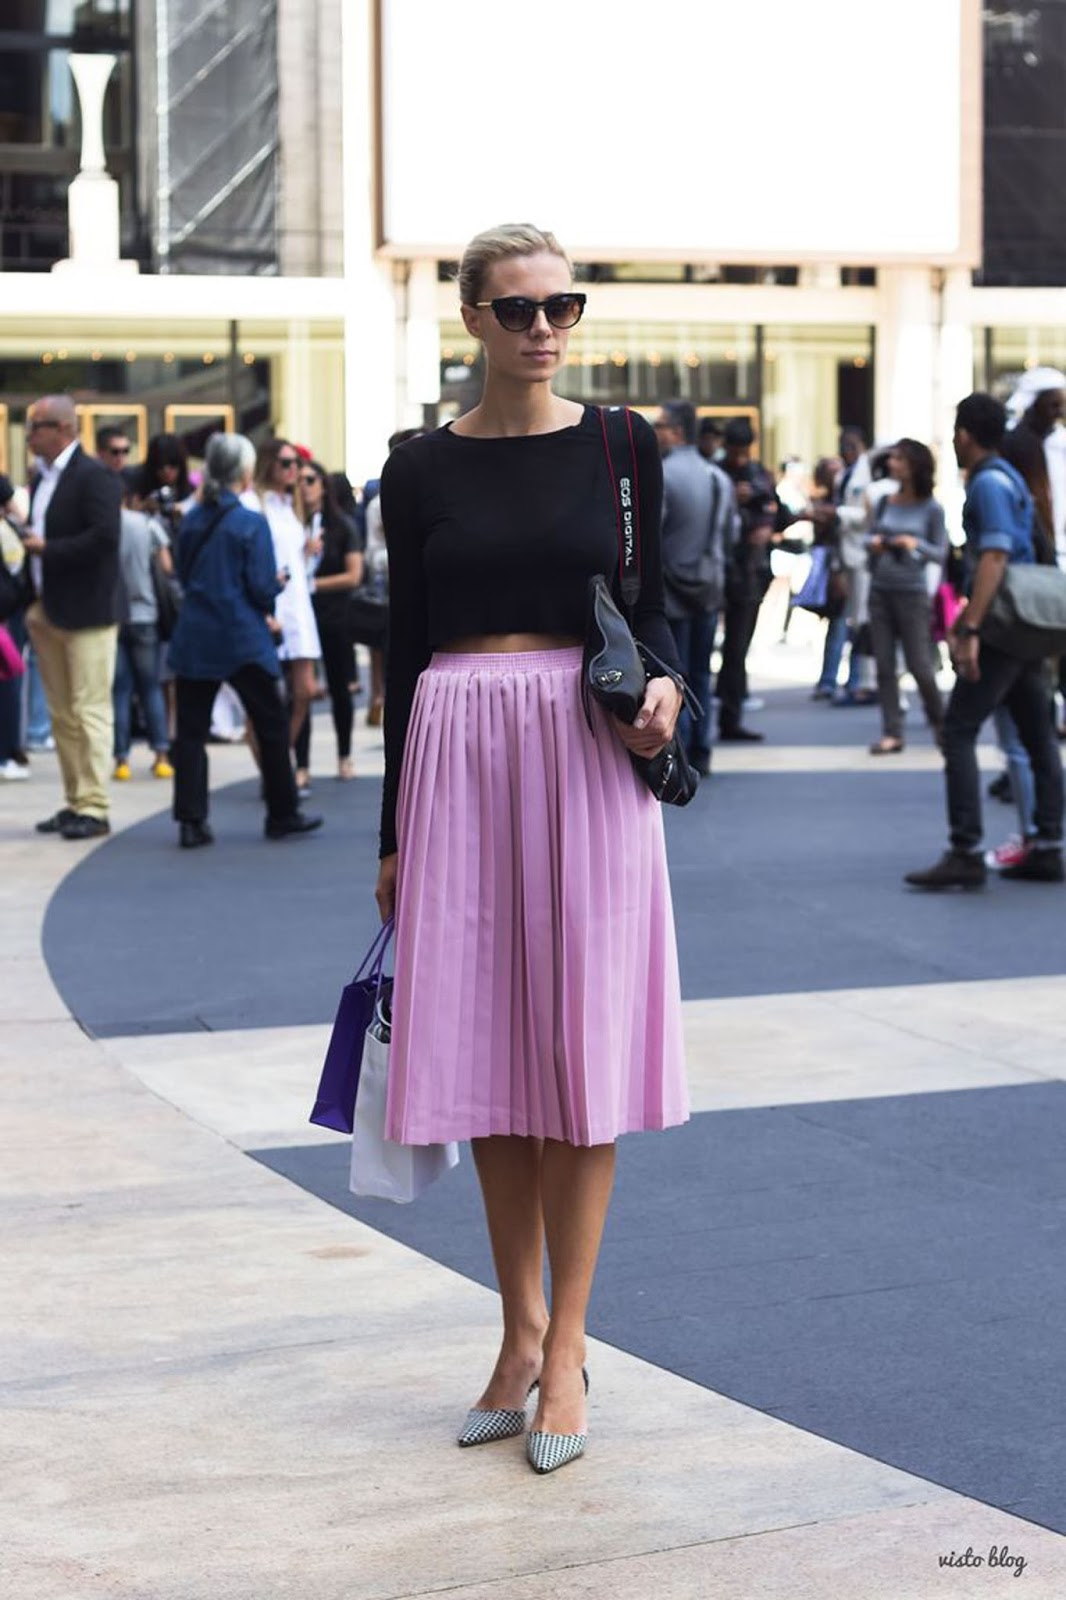 Eniwhere Fashion - Pleated skirt